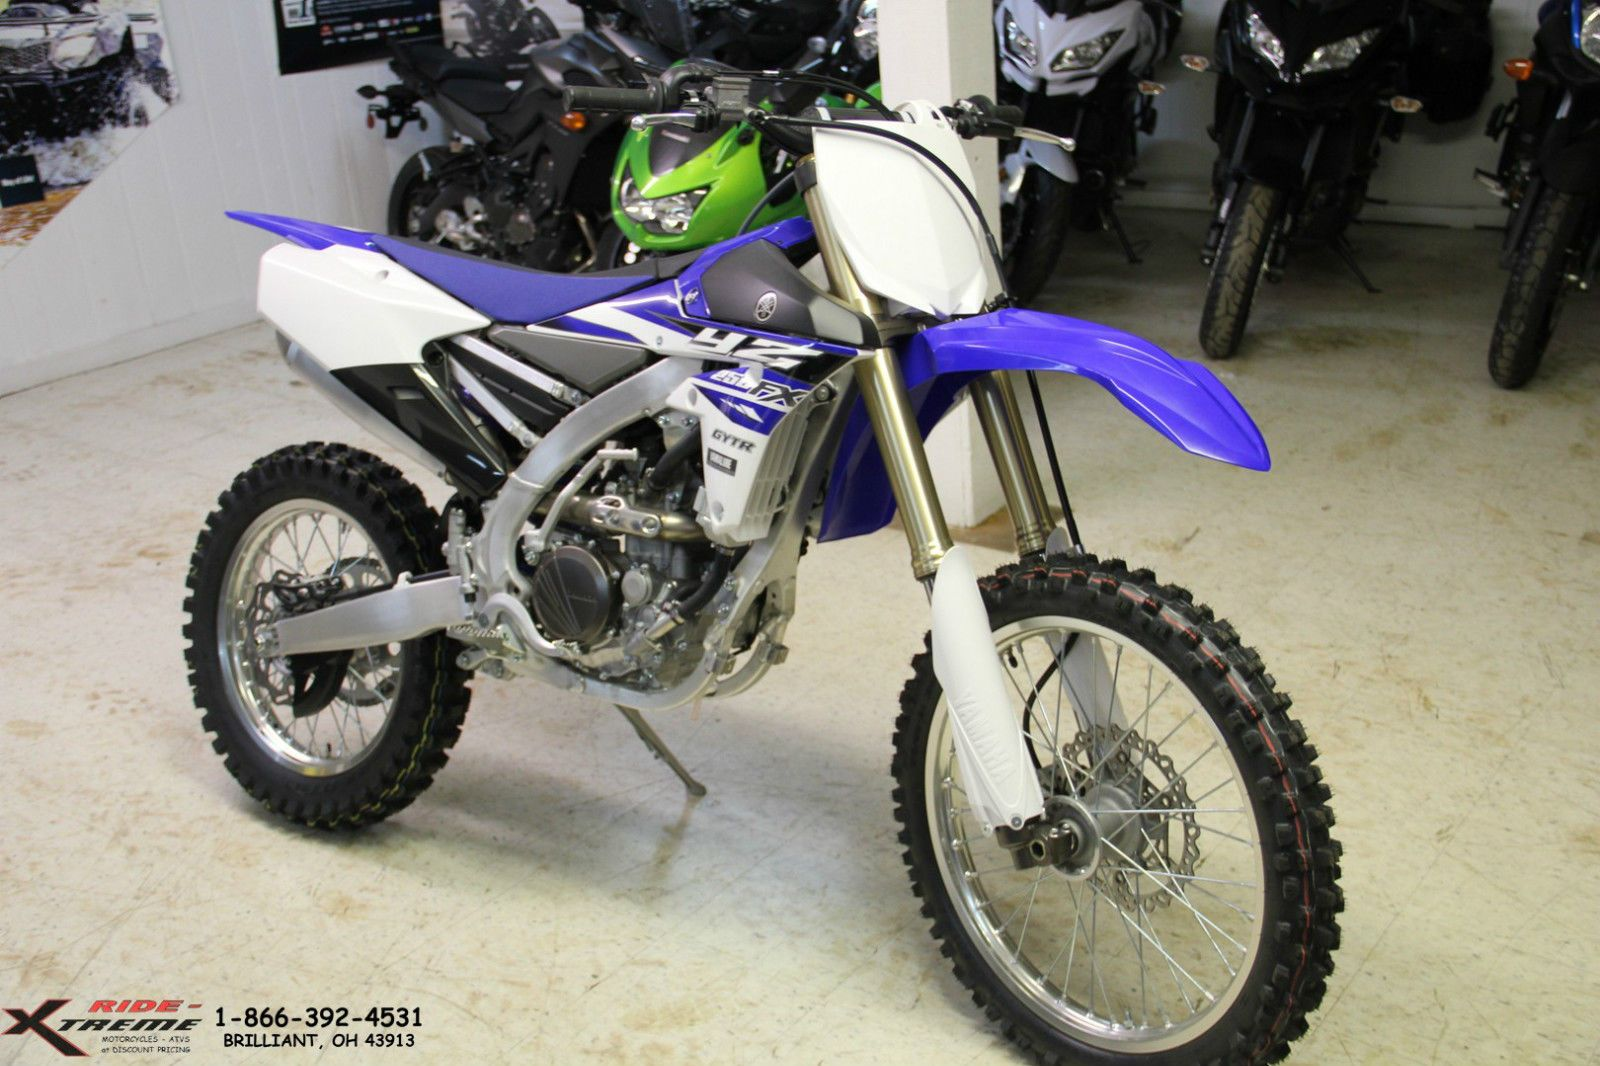 2015 Yamaha Yz250fx Dirt Bike For Sale Dirt Bikes For Sale Bike Dirt Bike